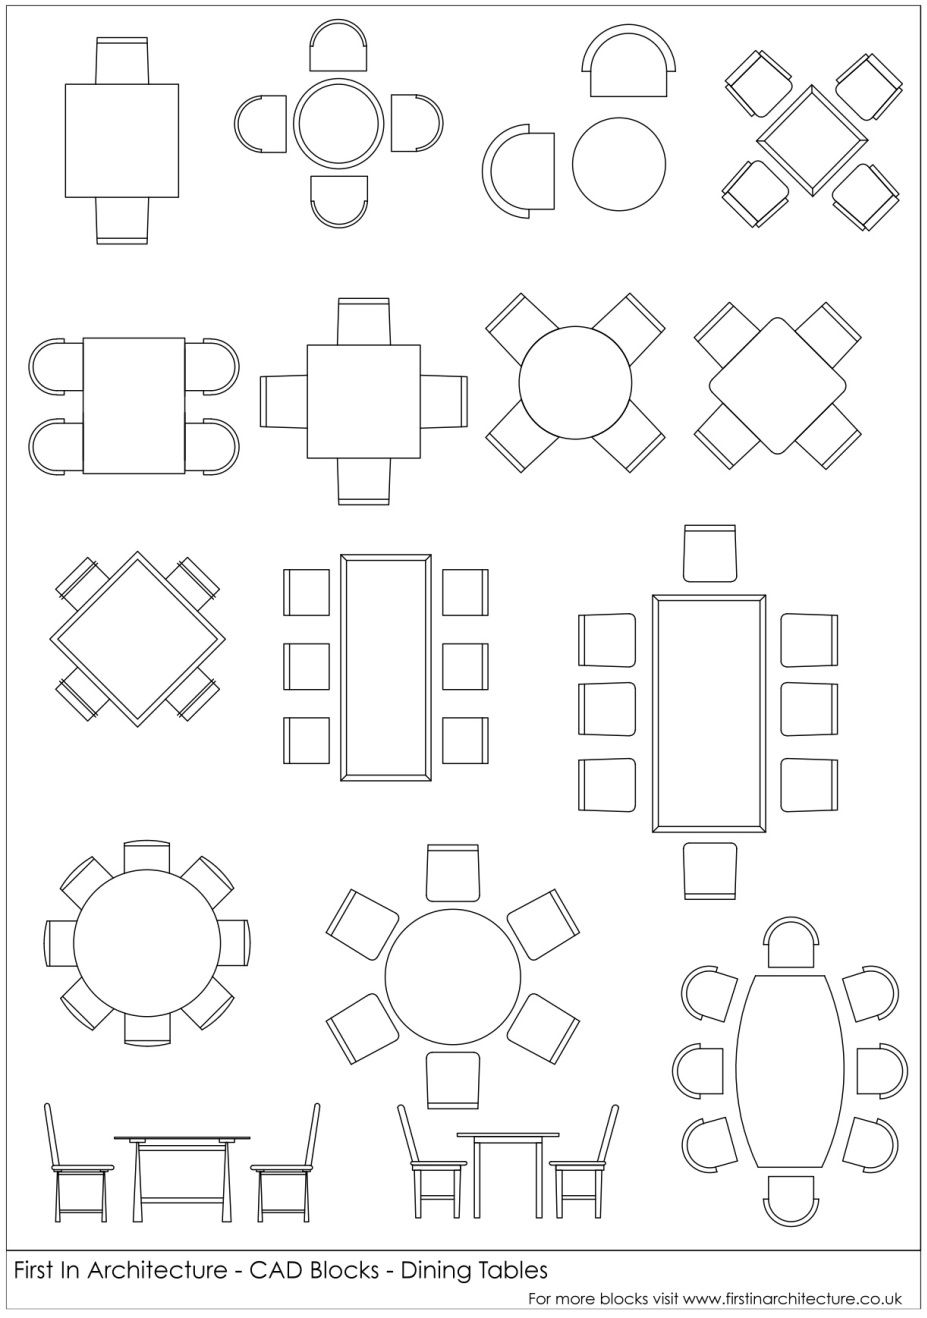 Fia Cad Blocks Dining Tables Architectural Drawings Pinterest